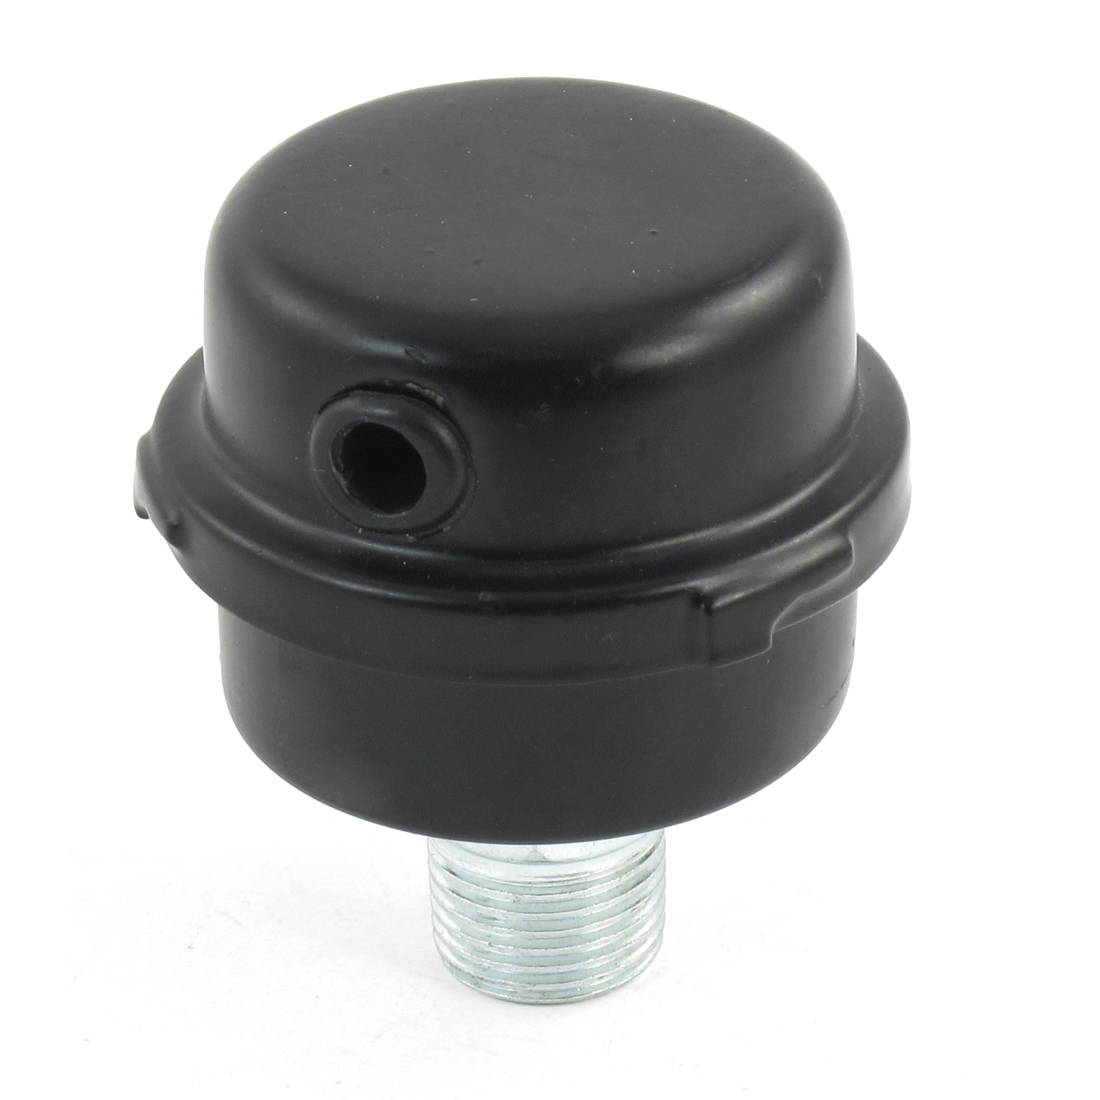 Compressor 20mm Dia Male Thread Air Intake Silencer Filter Black